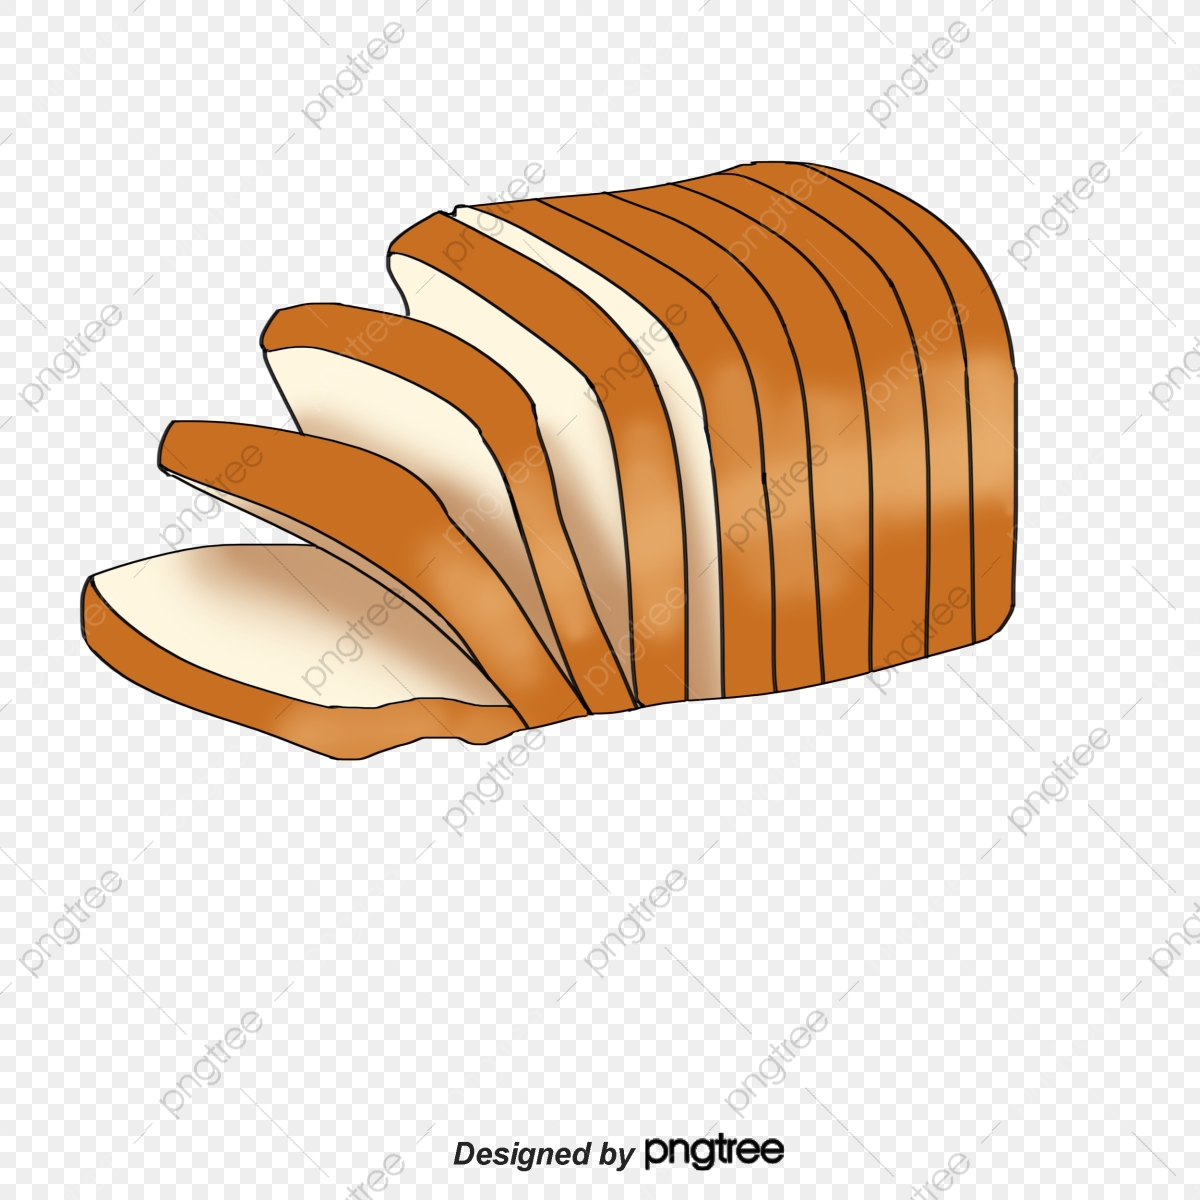 Slice Of Bread, Slice, Bread PNG Transparent Clipart Image and PSD.